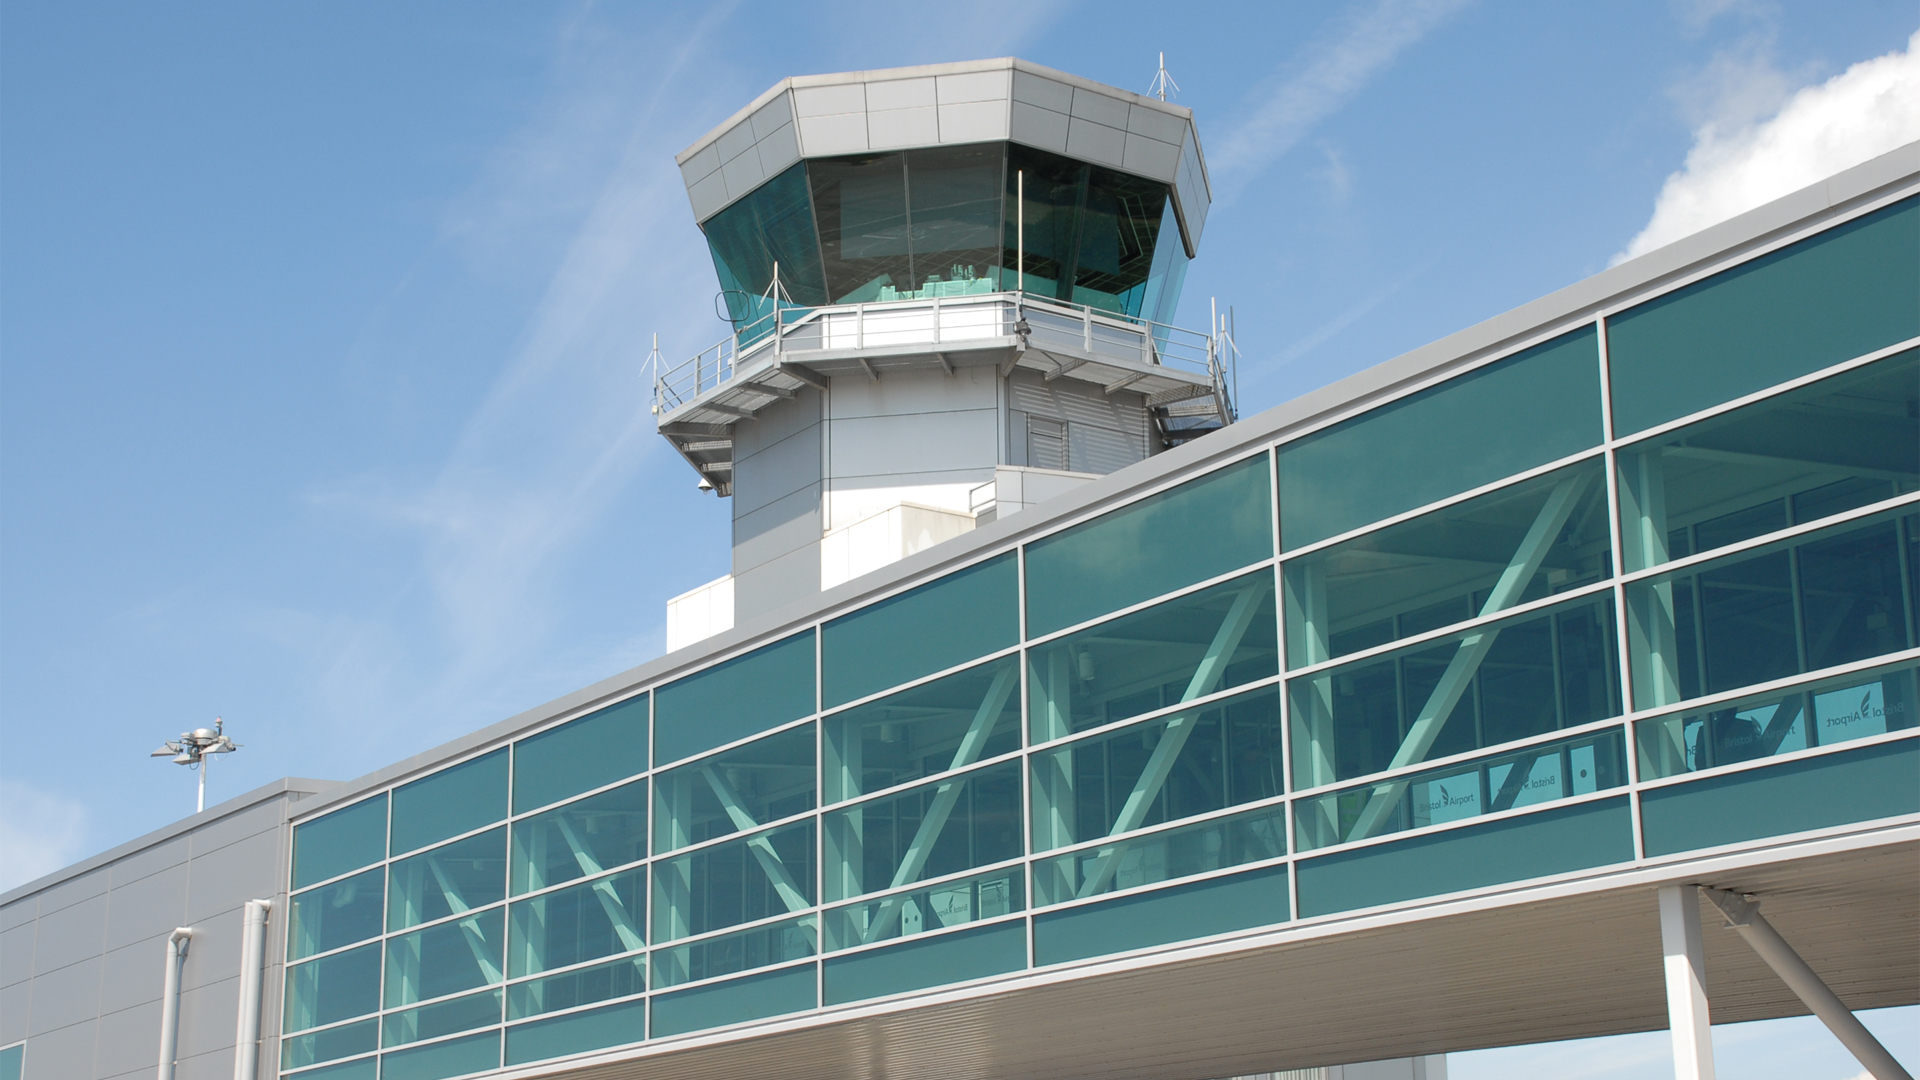 Bristol Airport Air Traffic Control Tower